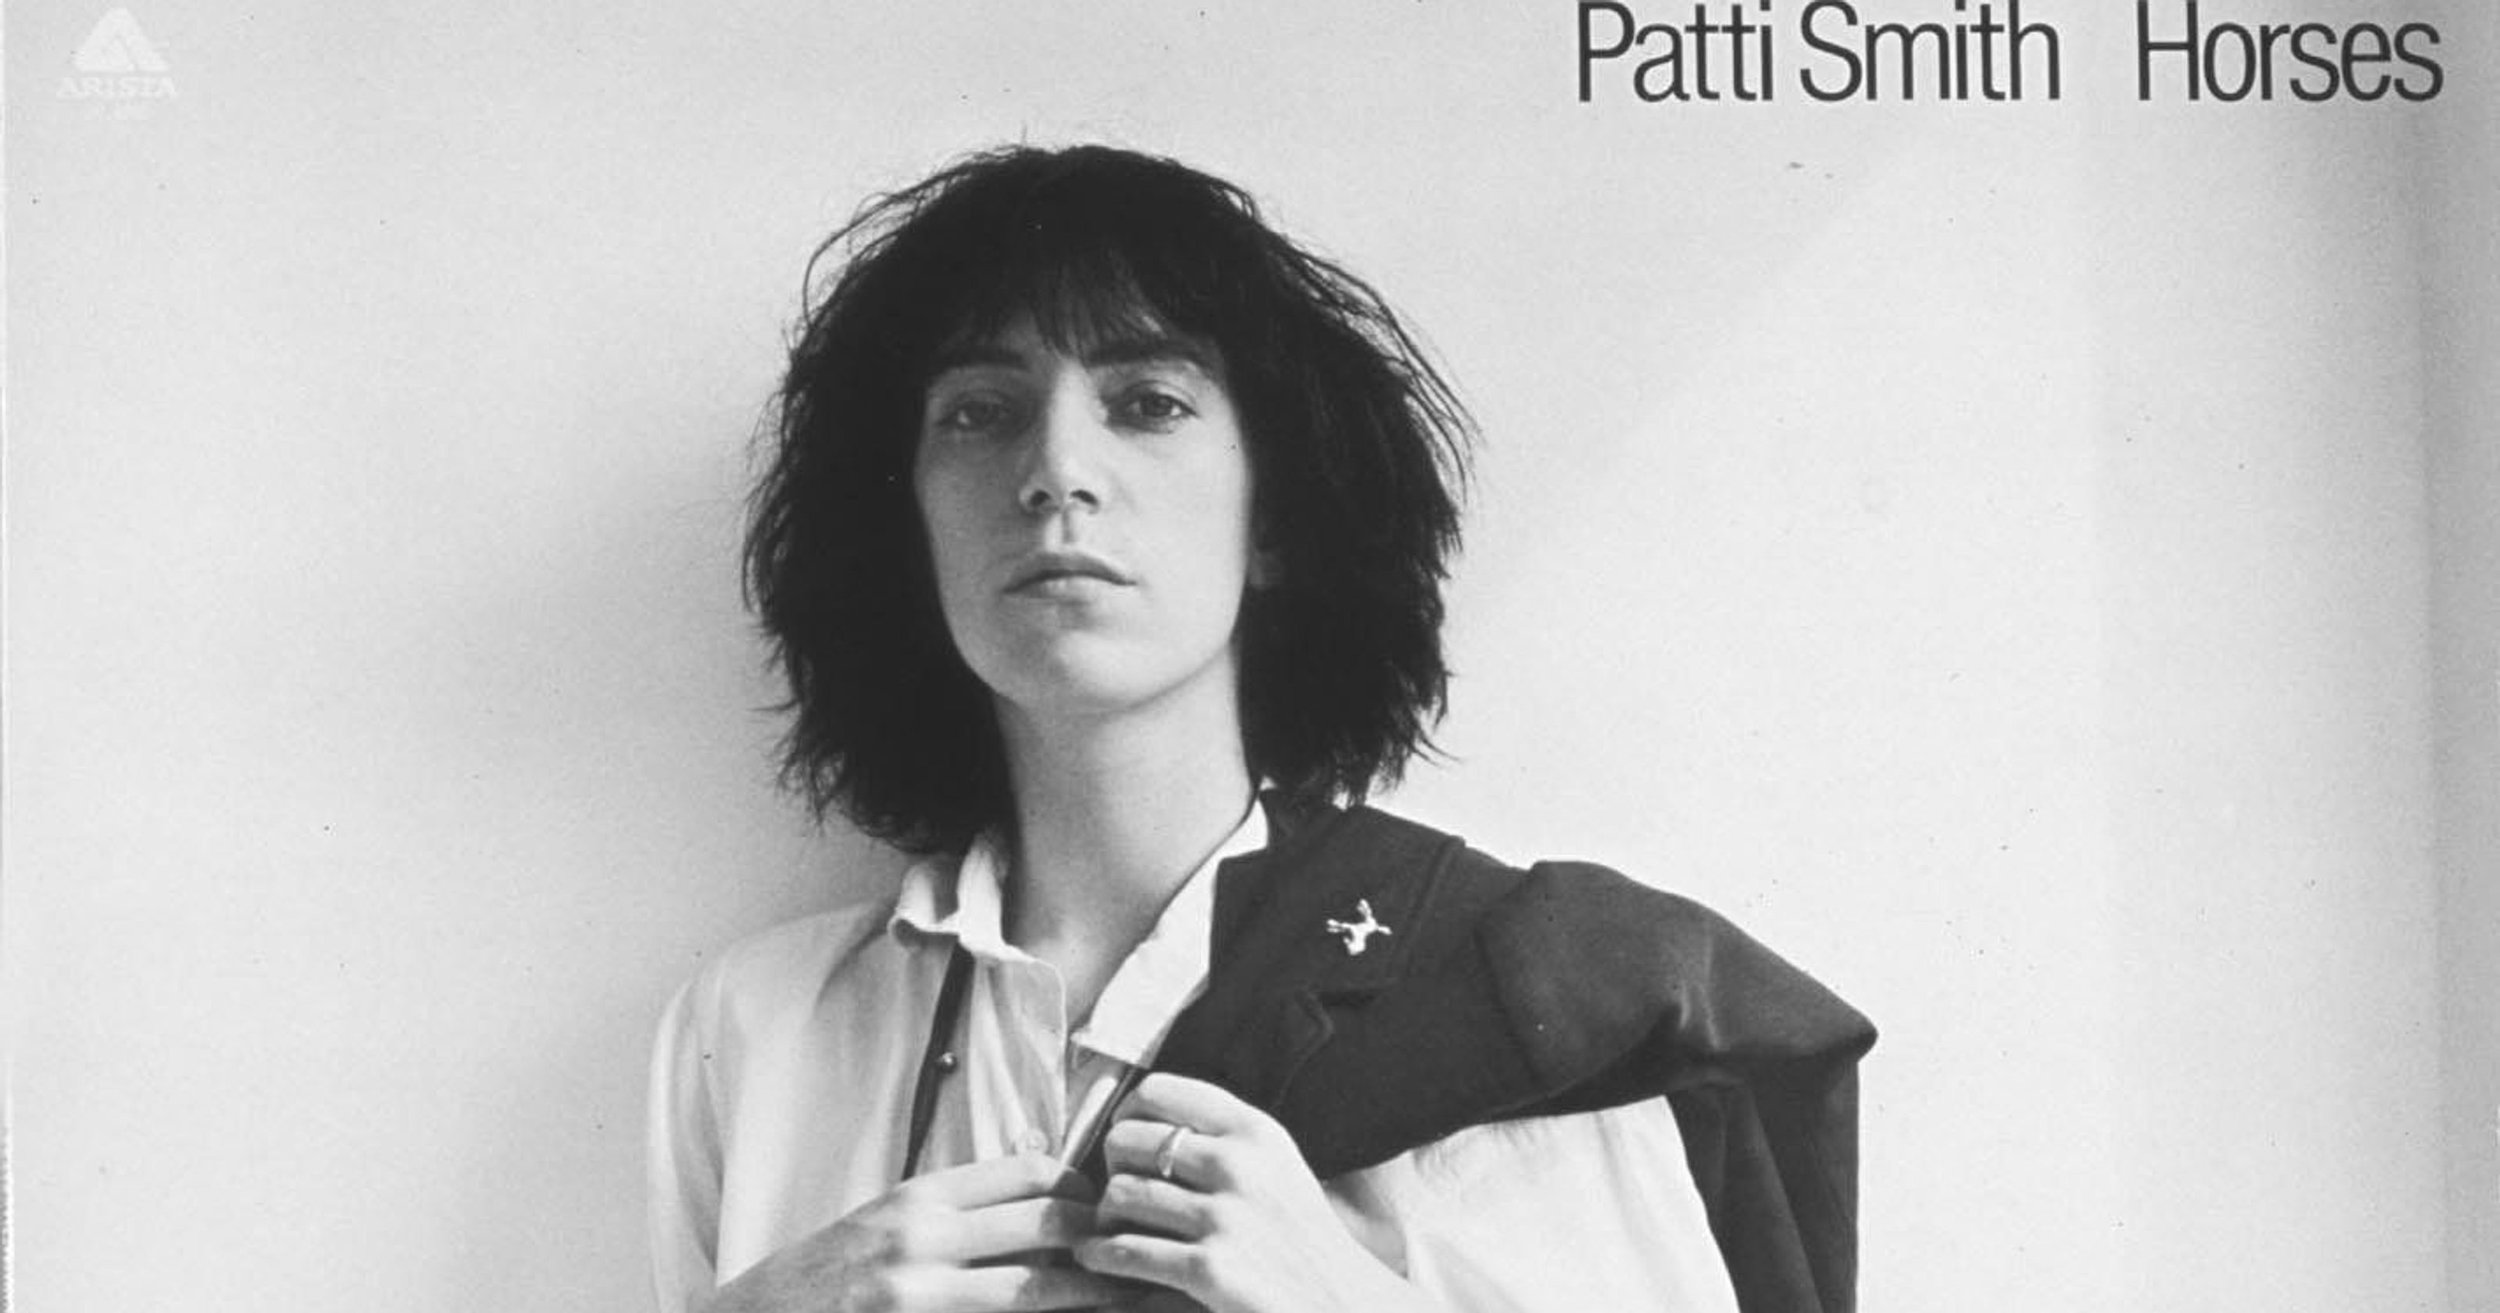 Patti Smith Horses.jpeg